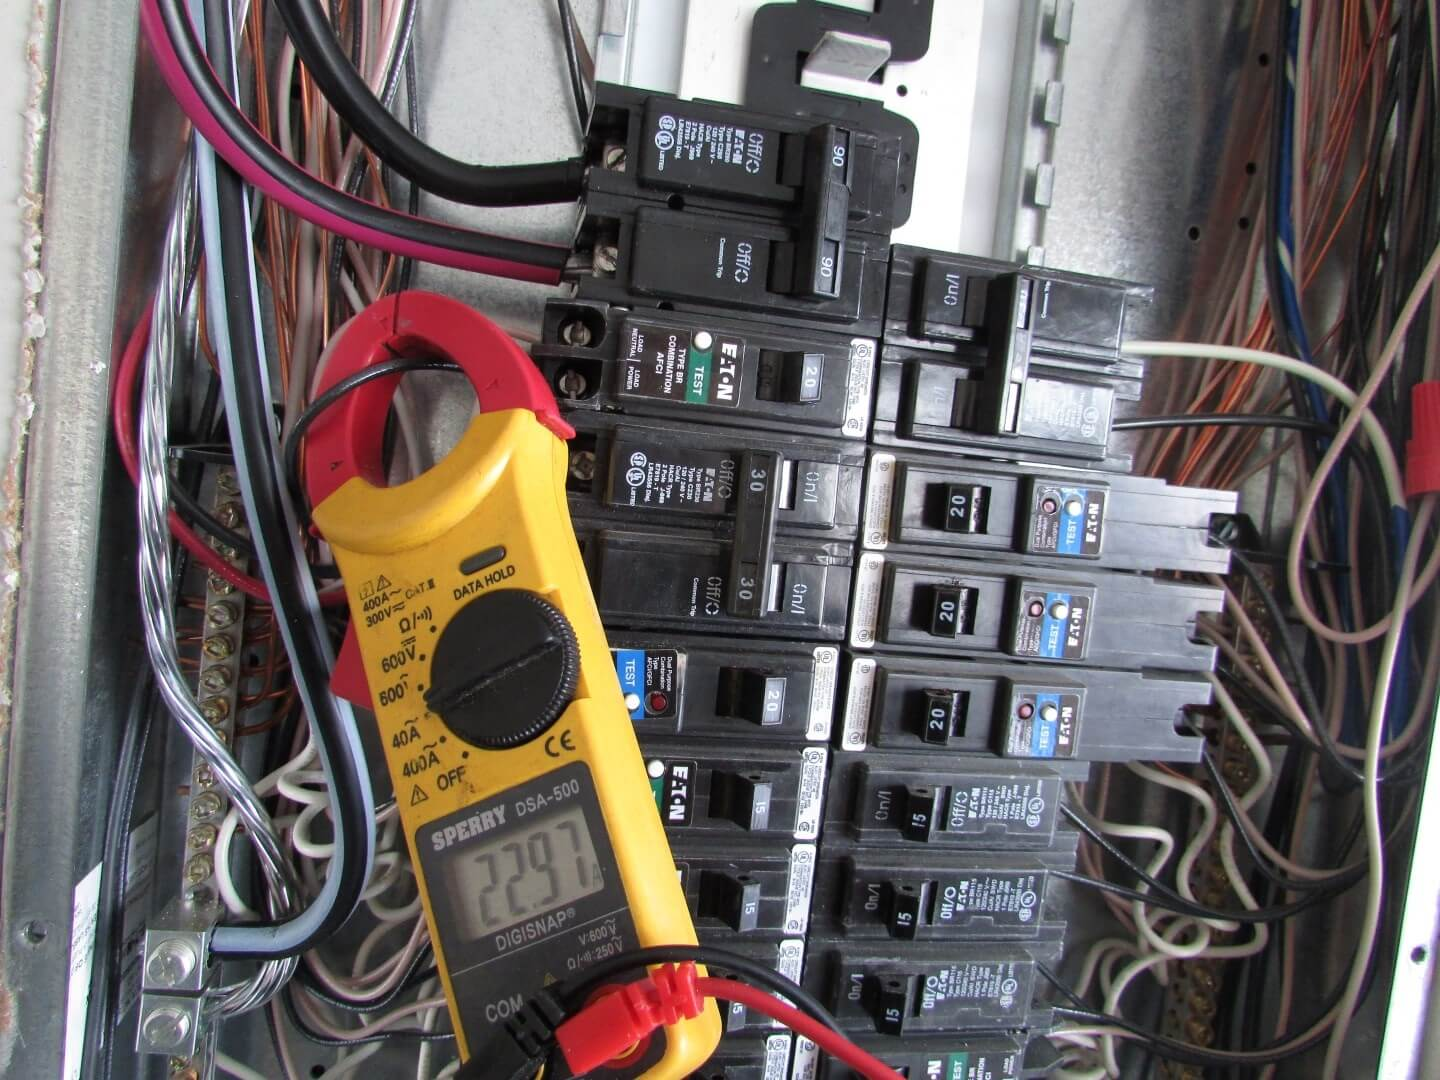 House Wiring Job Description How To Use An Infrared Camera Find Overloaded Circuits Clamp Meter On Circuit Breaker